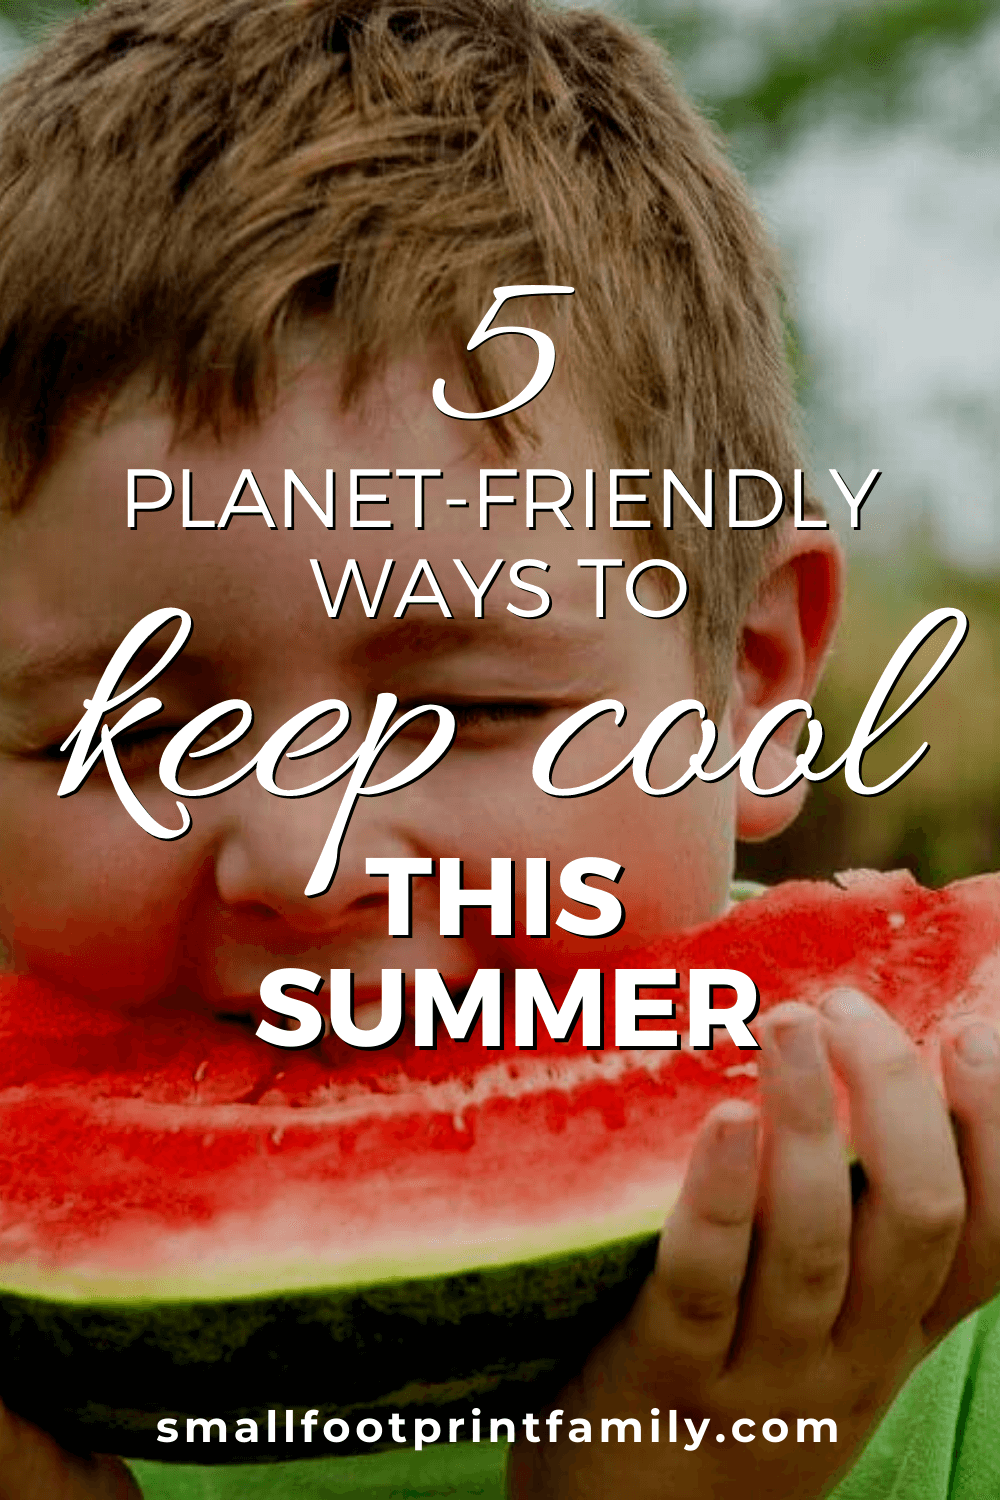 While you might not be able to quit using air conditioning entirely, here are five tips on keeping yourself cool in an environmentally responsible manner, no matter where you happen to be.#greenliving #greenparenting #ecofriendly #sustainability #gogreen #naturalliving #climatechange #energysaving #moneysavers #savingmoney